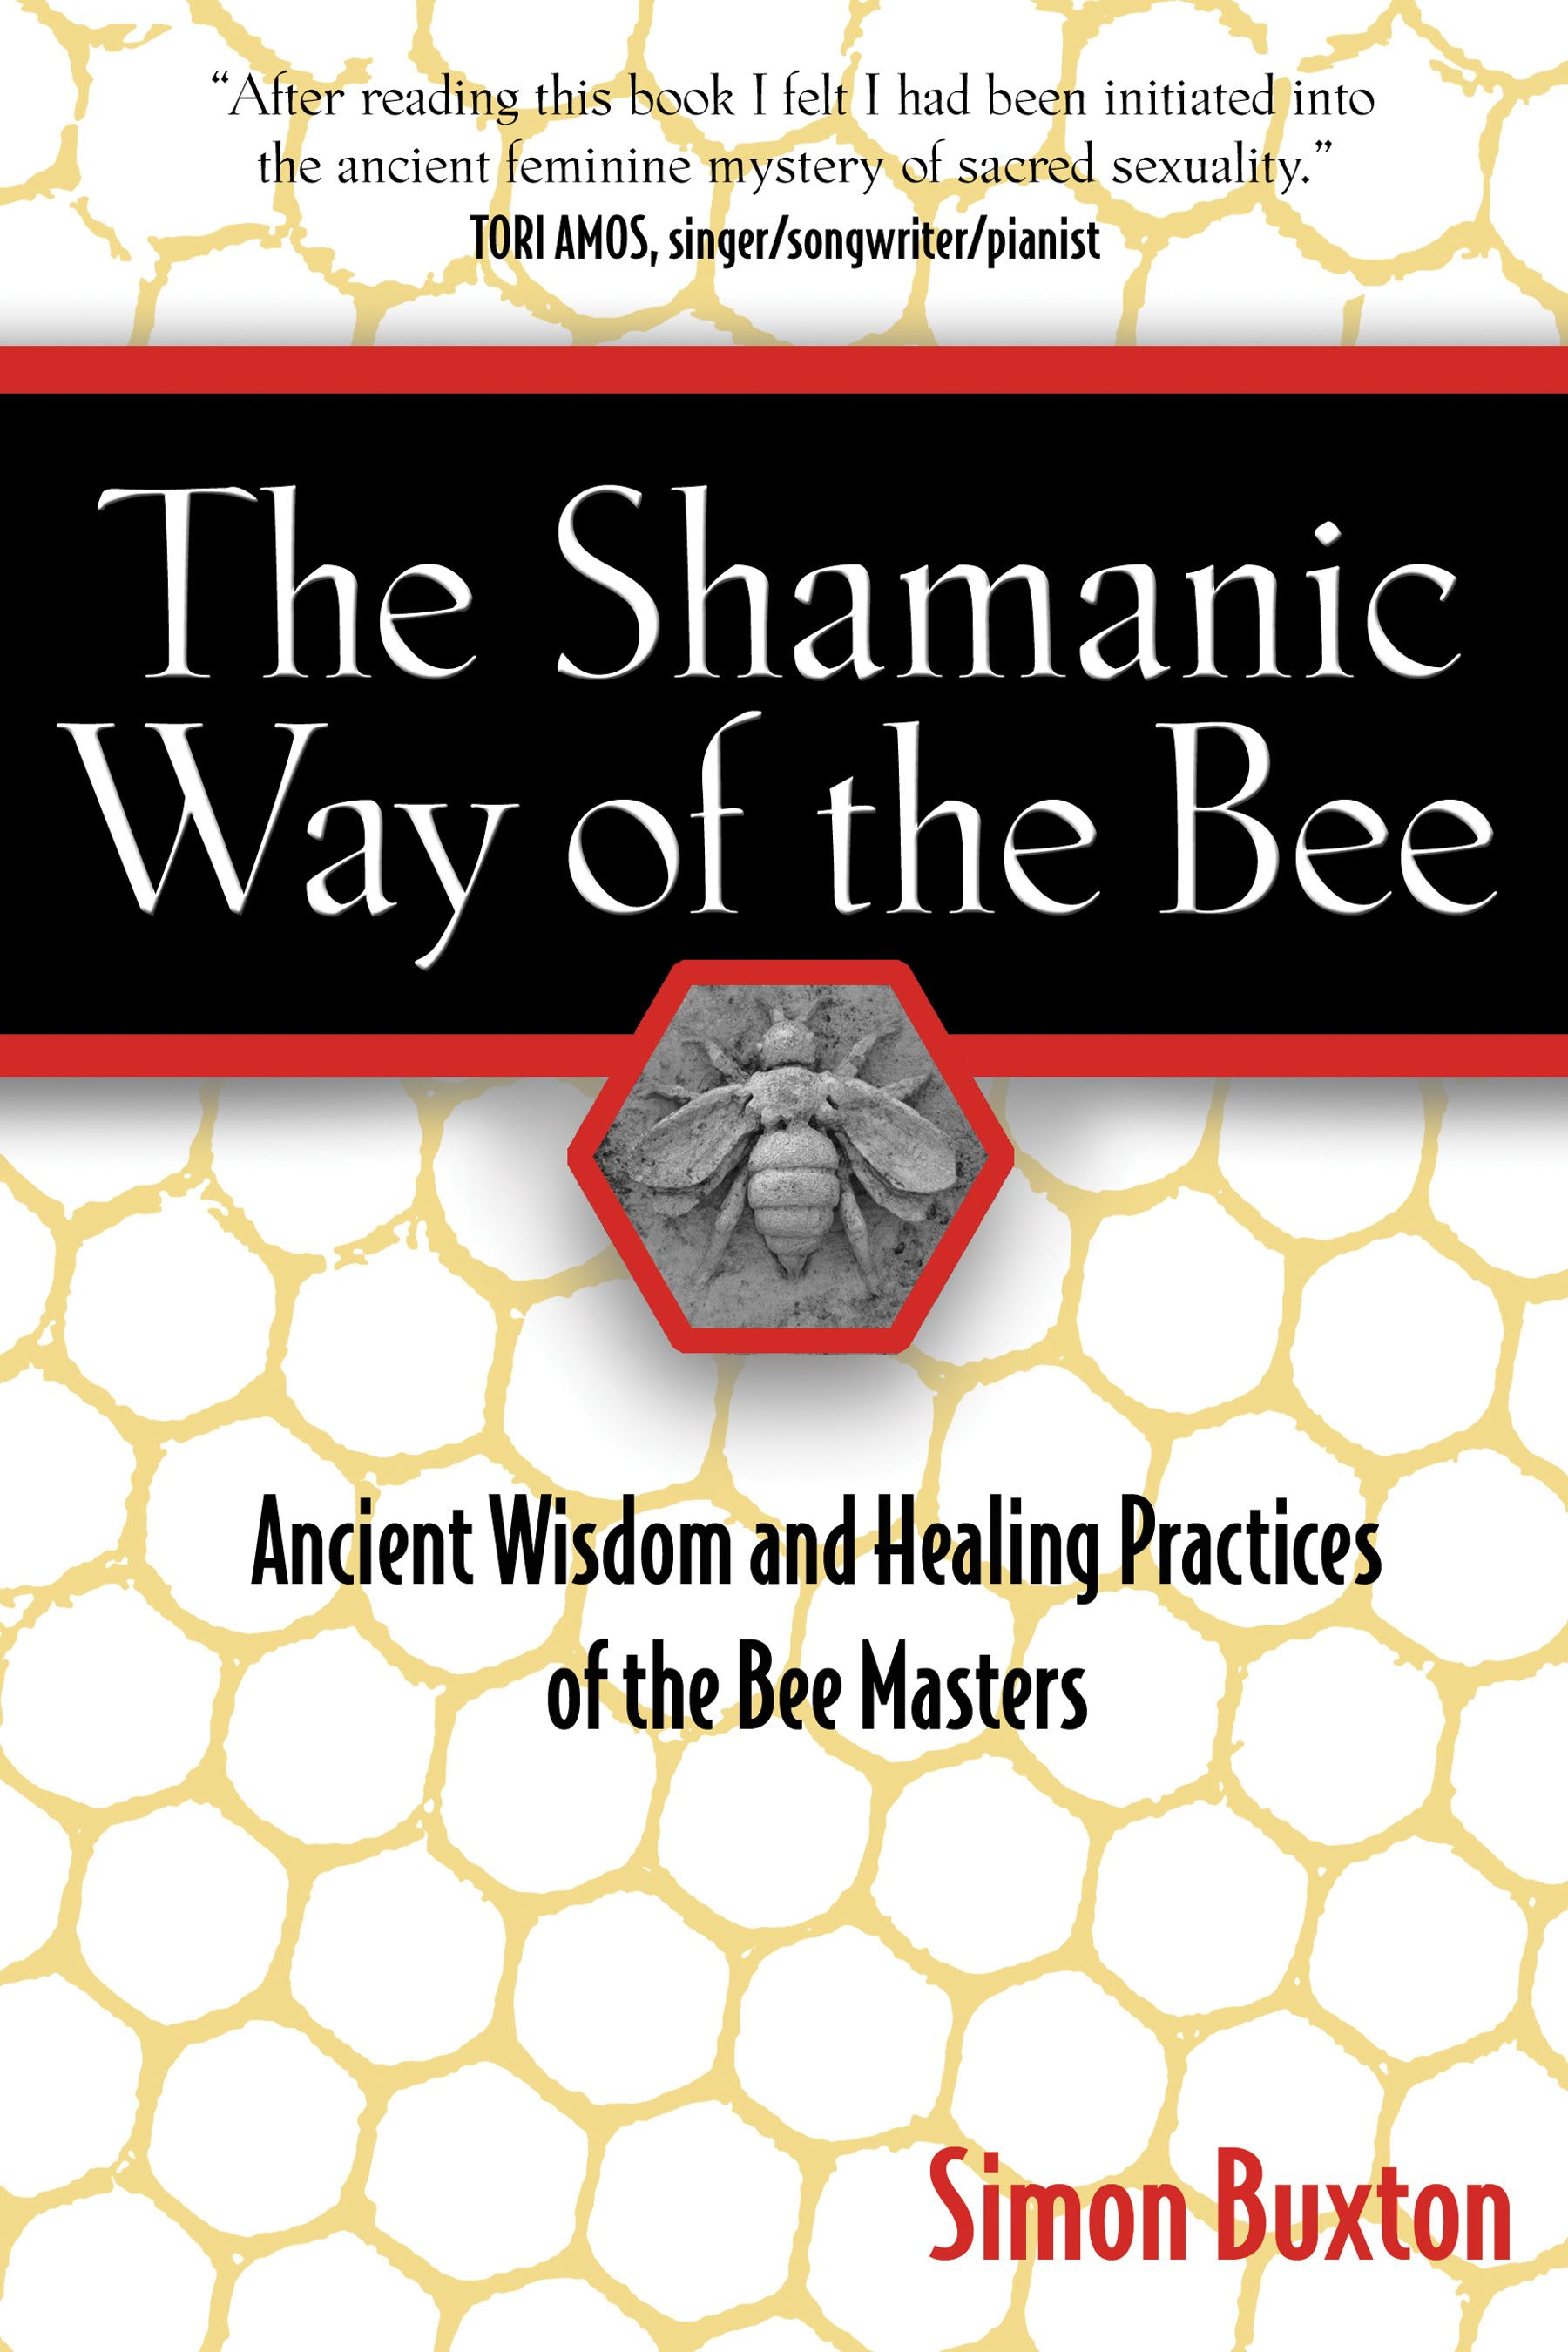 The shamanic way of the bee 9781594771194 hr